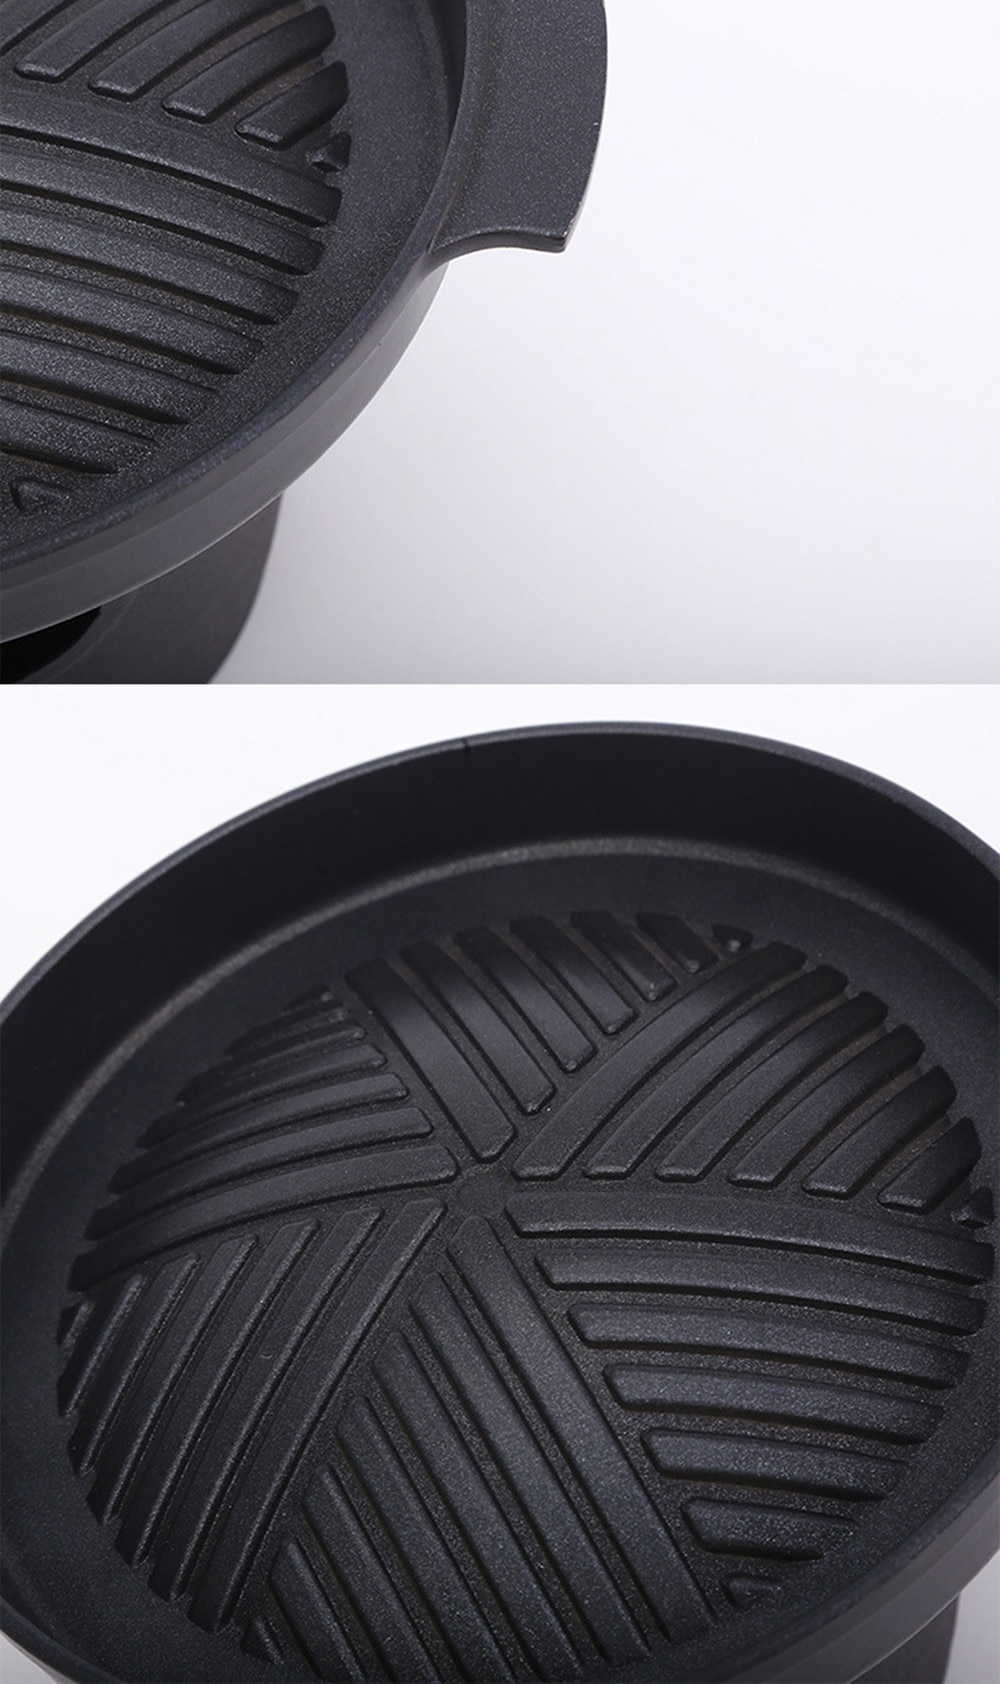 Non-Stick Korean BBQ Grills Round Pan Barbecue Grill for Outdoor Portable DIY BBQ Accessories Alcohol Grill Household BBQ Tools